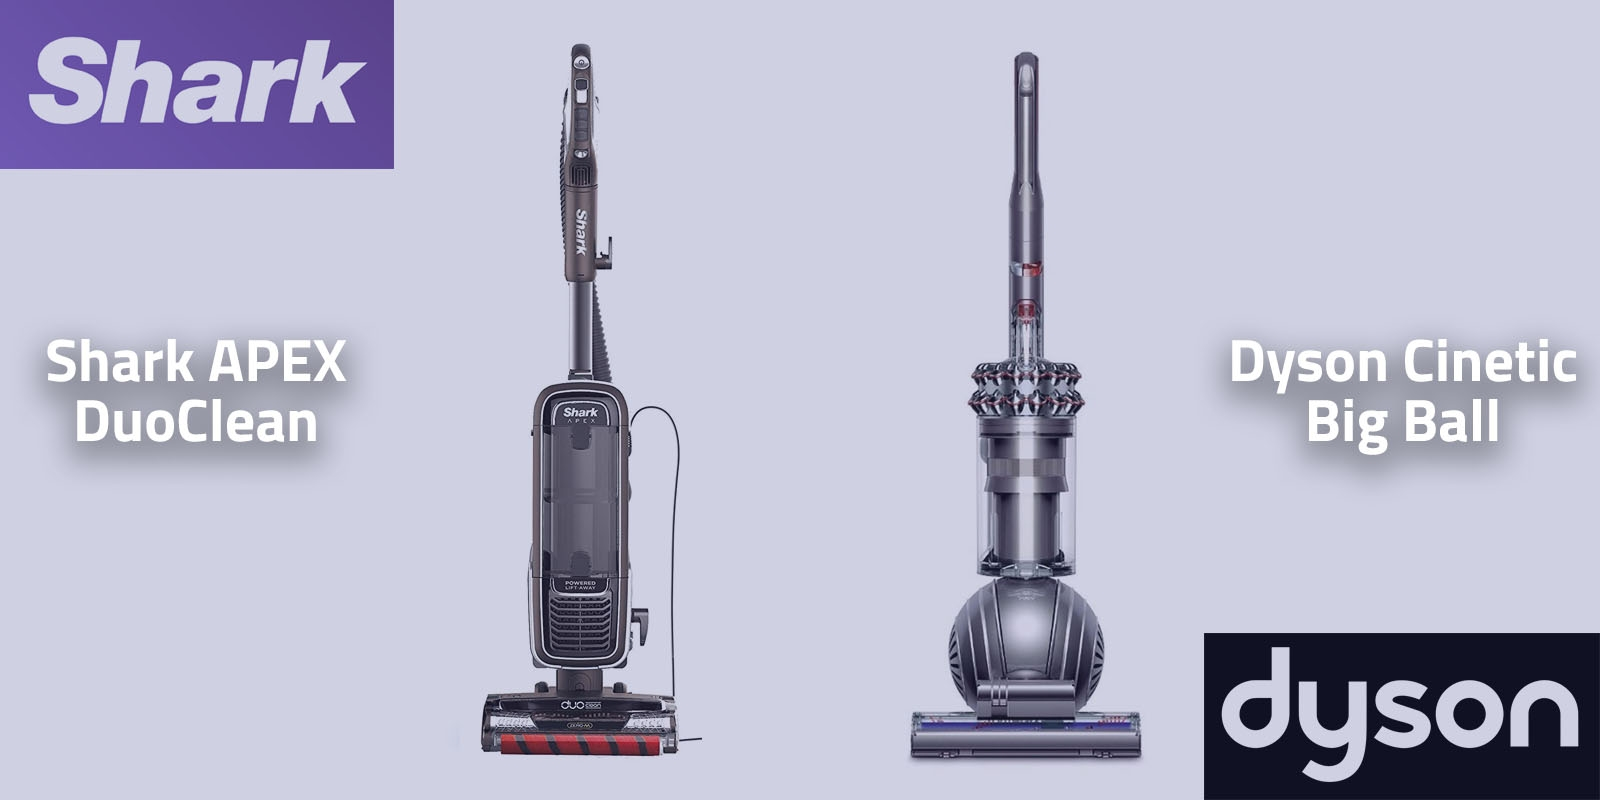 Shark APEX DuoClean vs Dyson Cinetic Big Ball